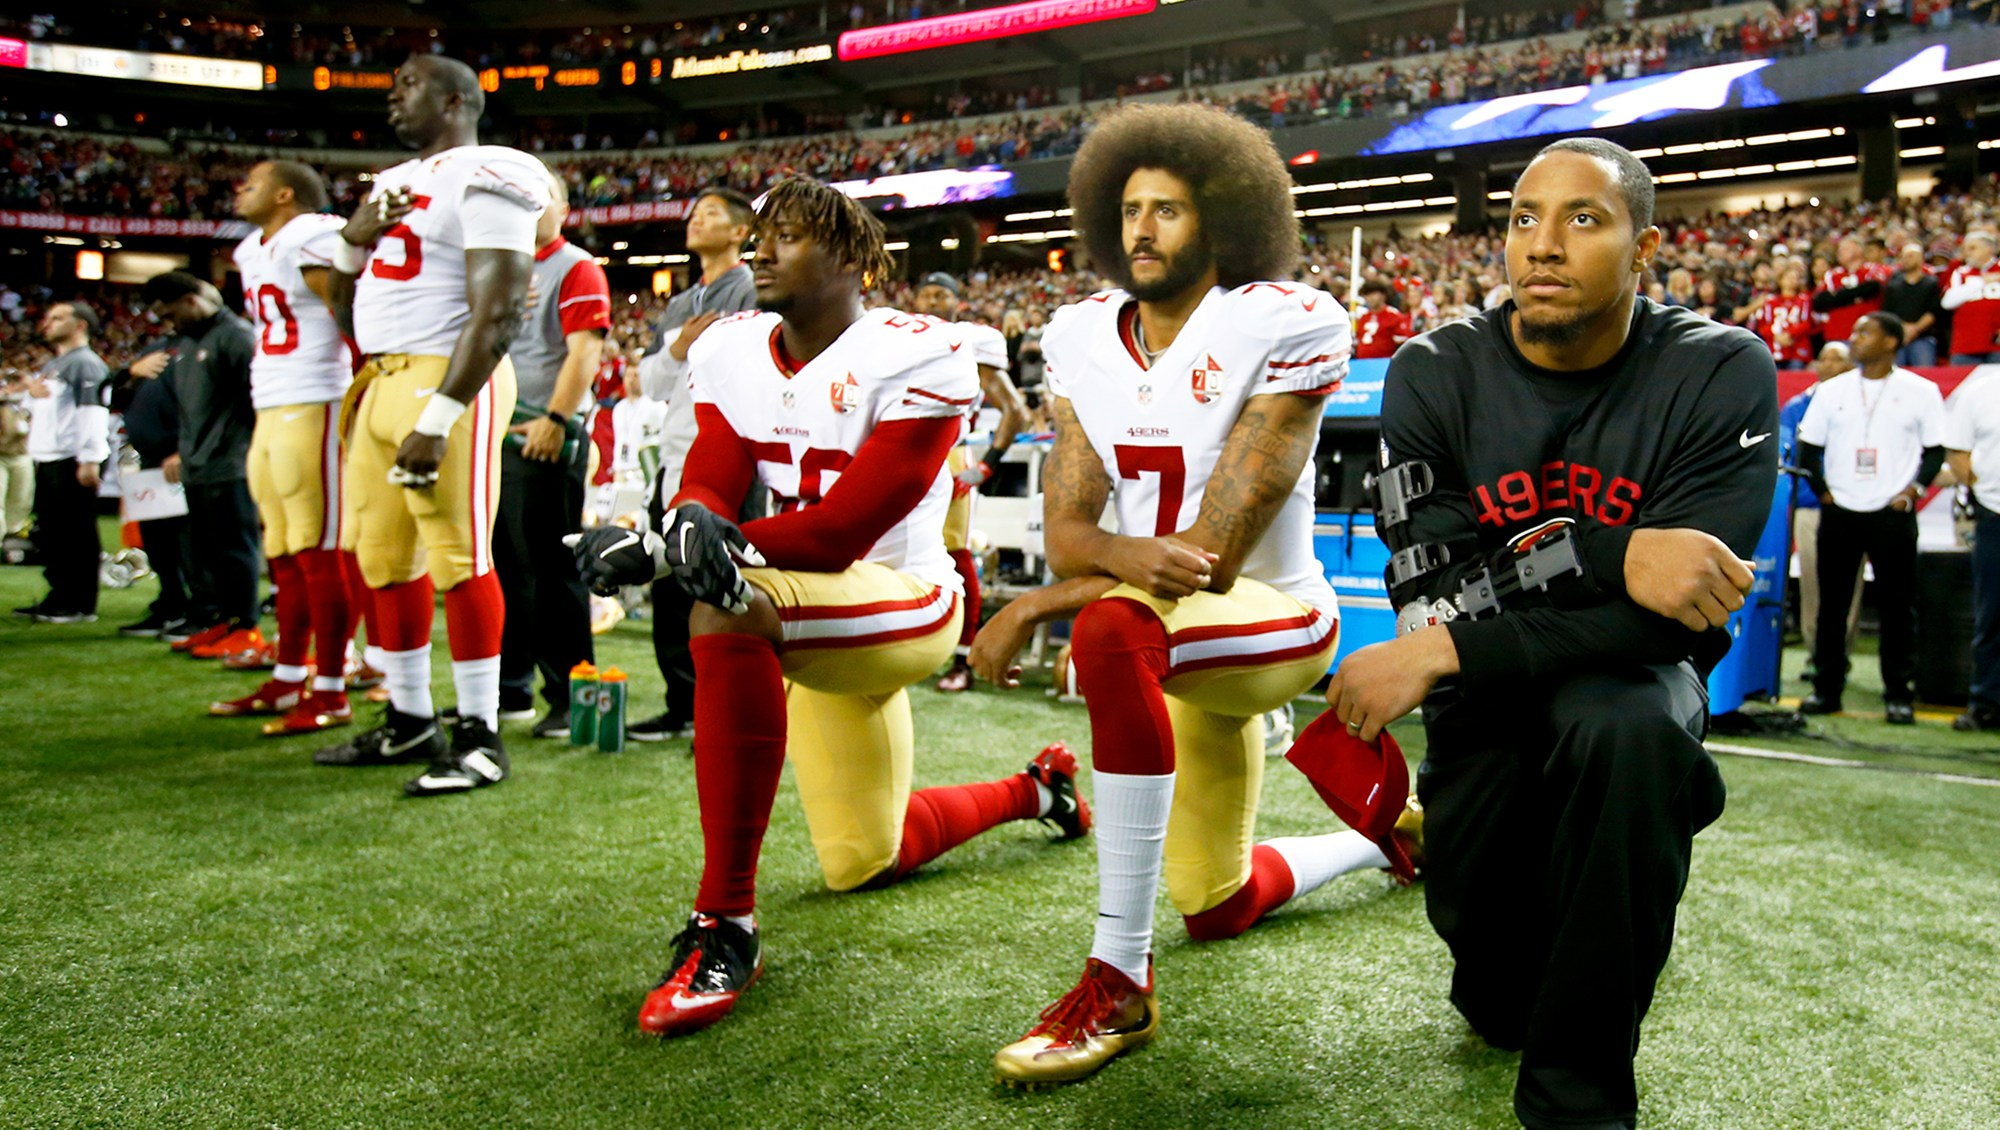 Colin Kaepernick #7 of the San Francisco 49ers kneel on the sideline, during the anthem, prior to the game against the Atlanta Falcons at the Georgia Dome on December 18, 2016 in Atlanta, Georgia.